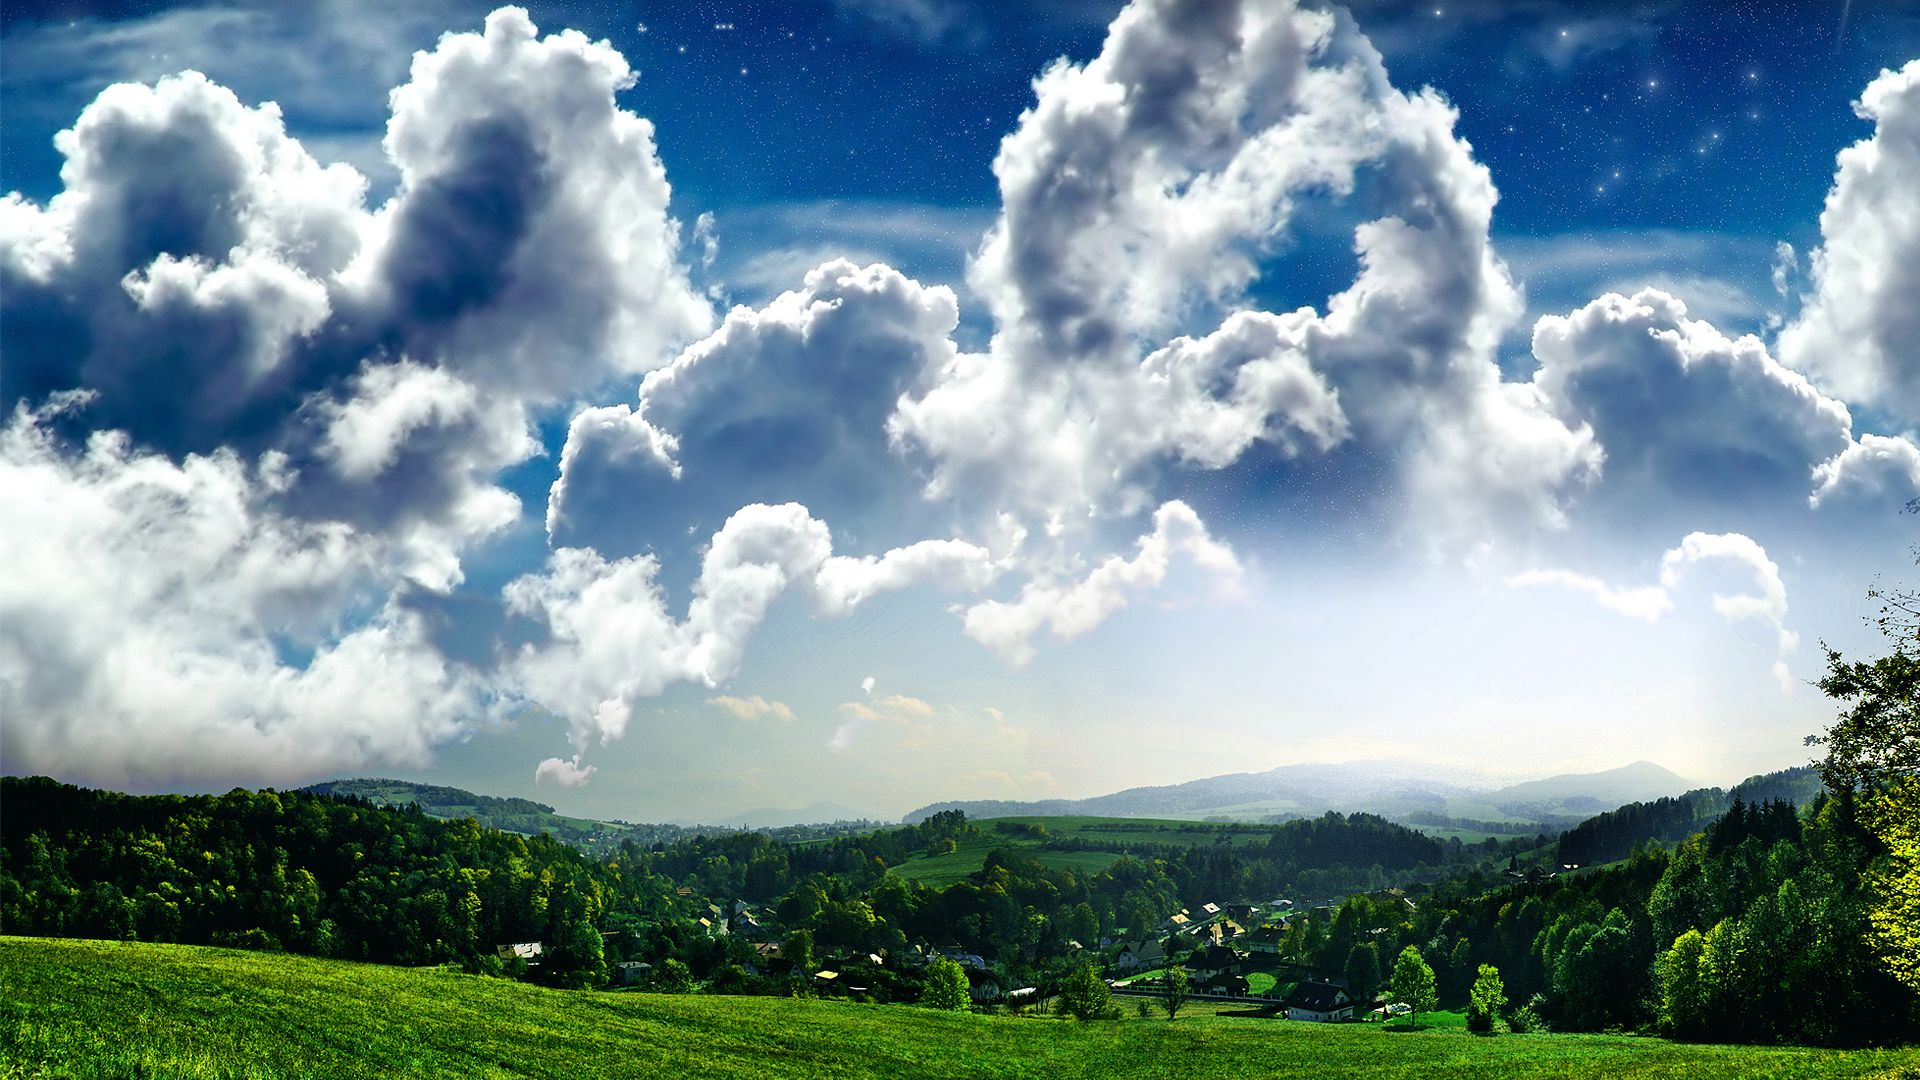 1366x768 Hd Wallpaper Beautiful Nature Pictures Clouds Beautiful Nature Wallpaper